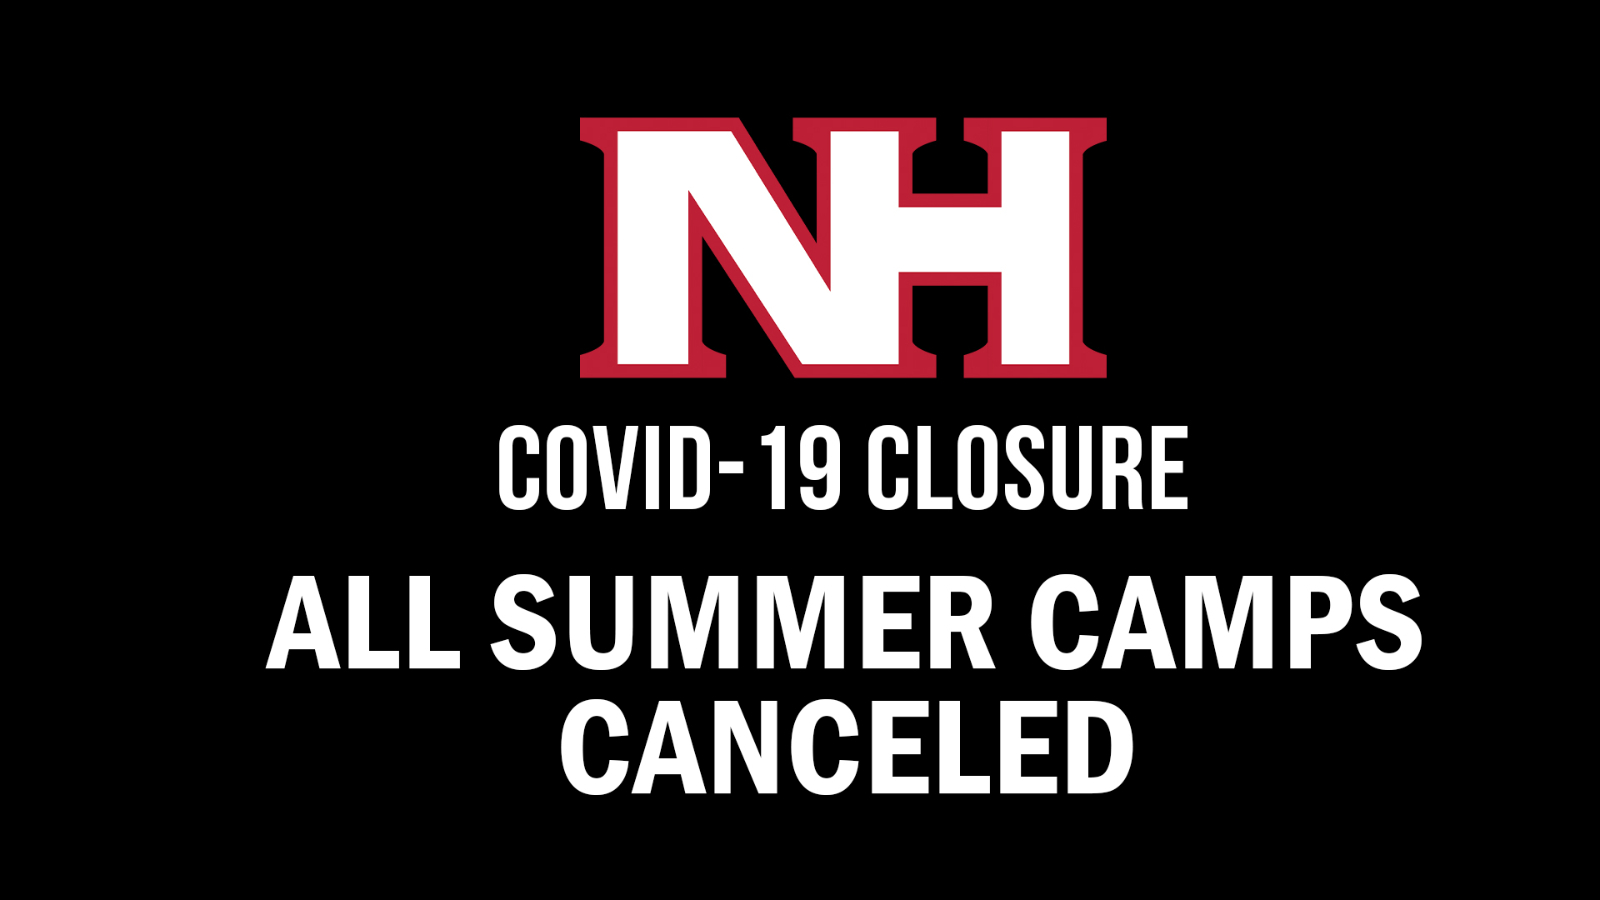 ALL summer camps held by outside organizations canceled